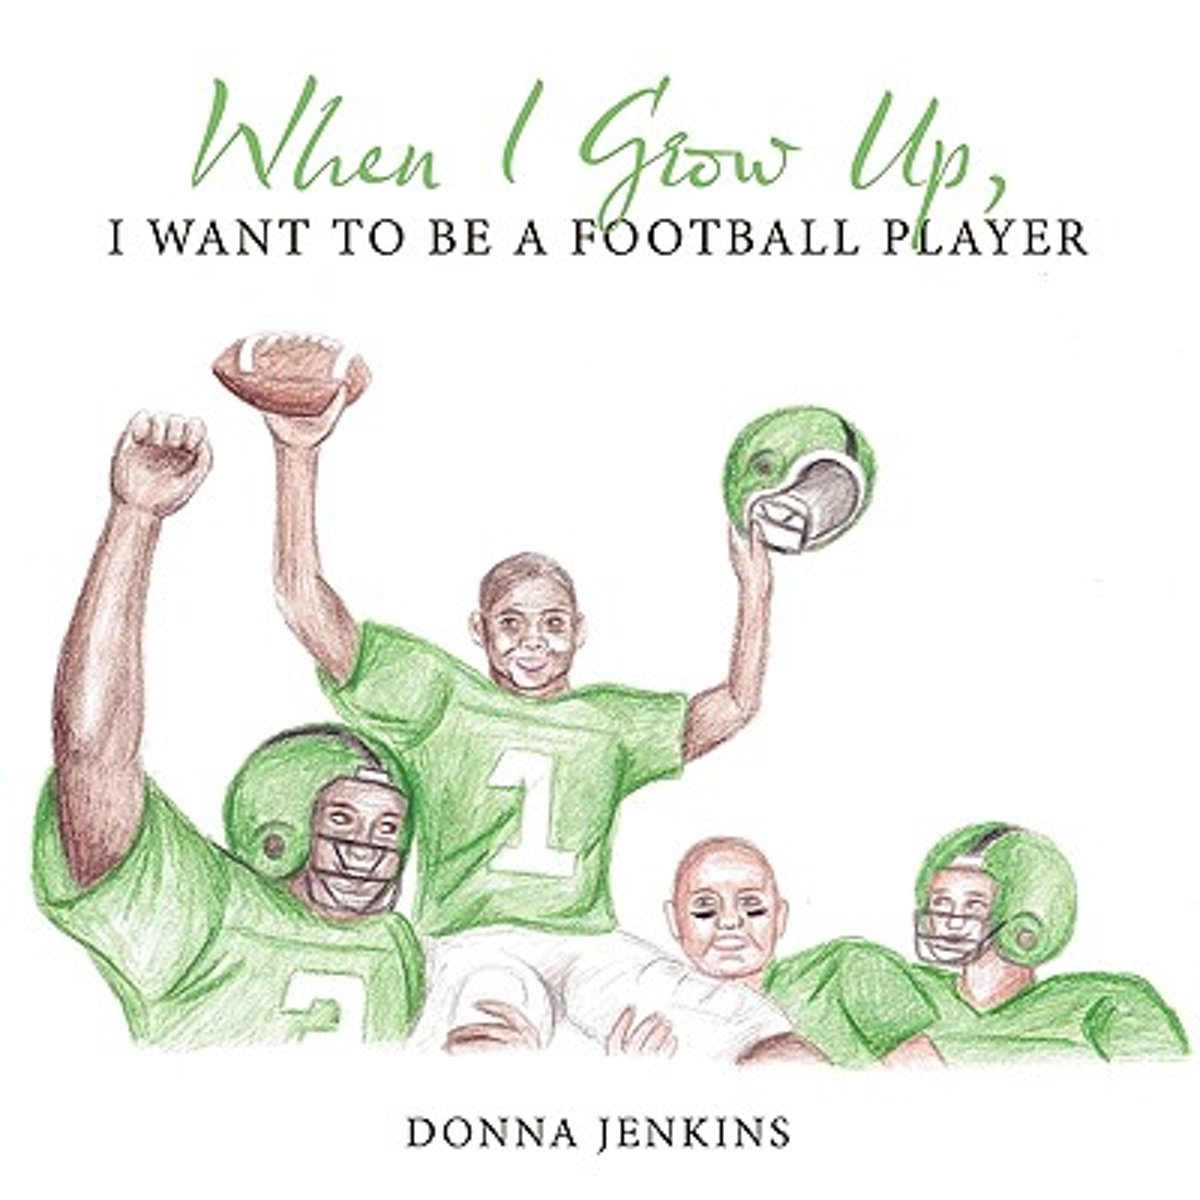 When I Grow Up, I Want to be a Football Player